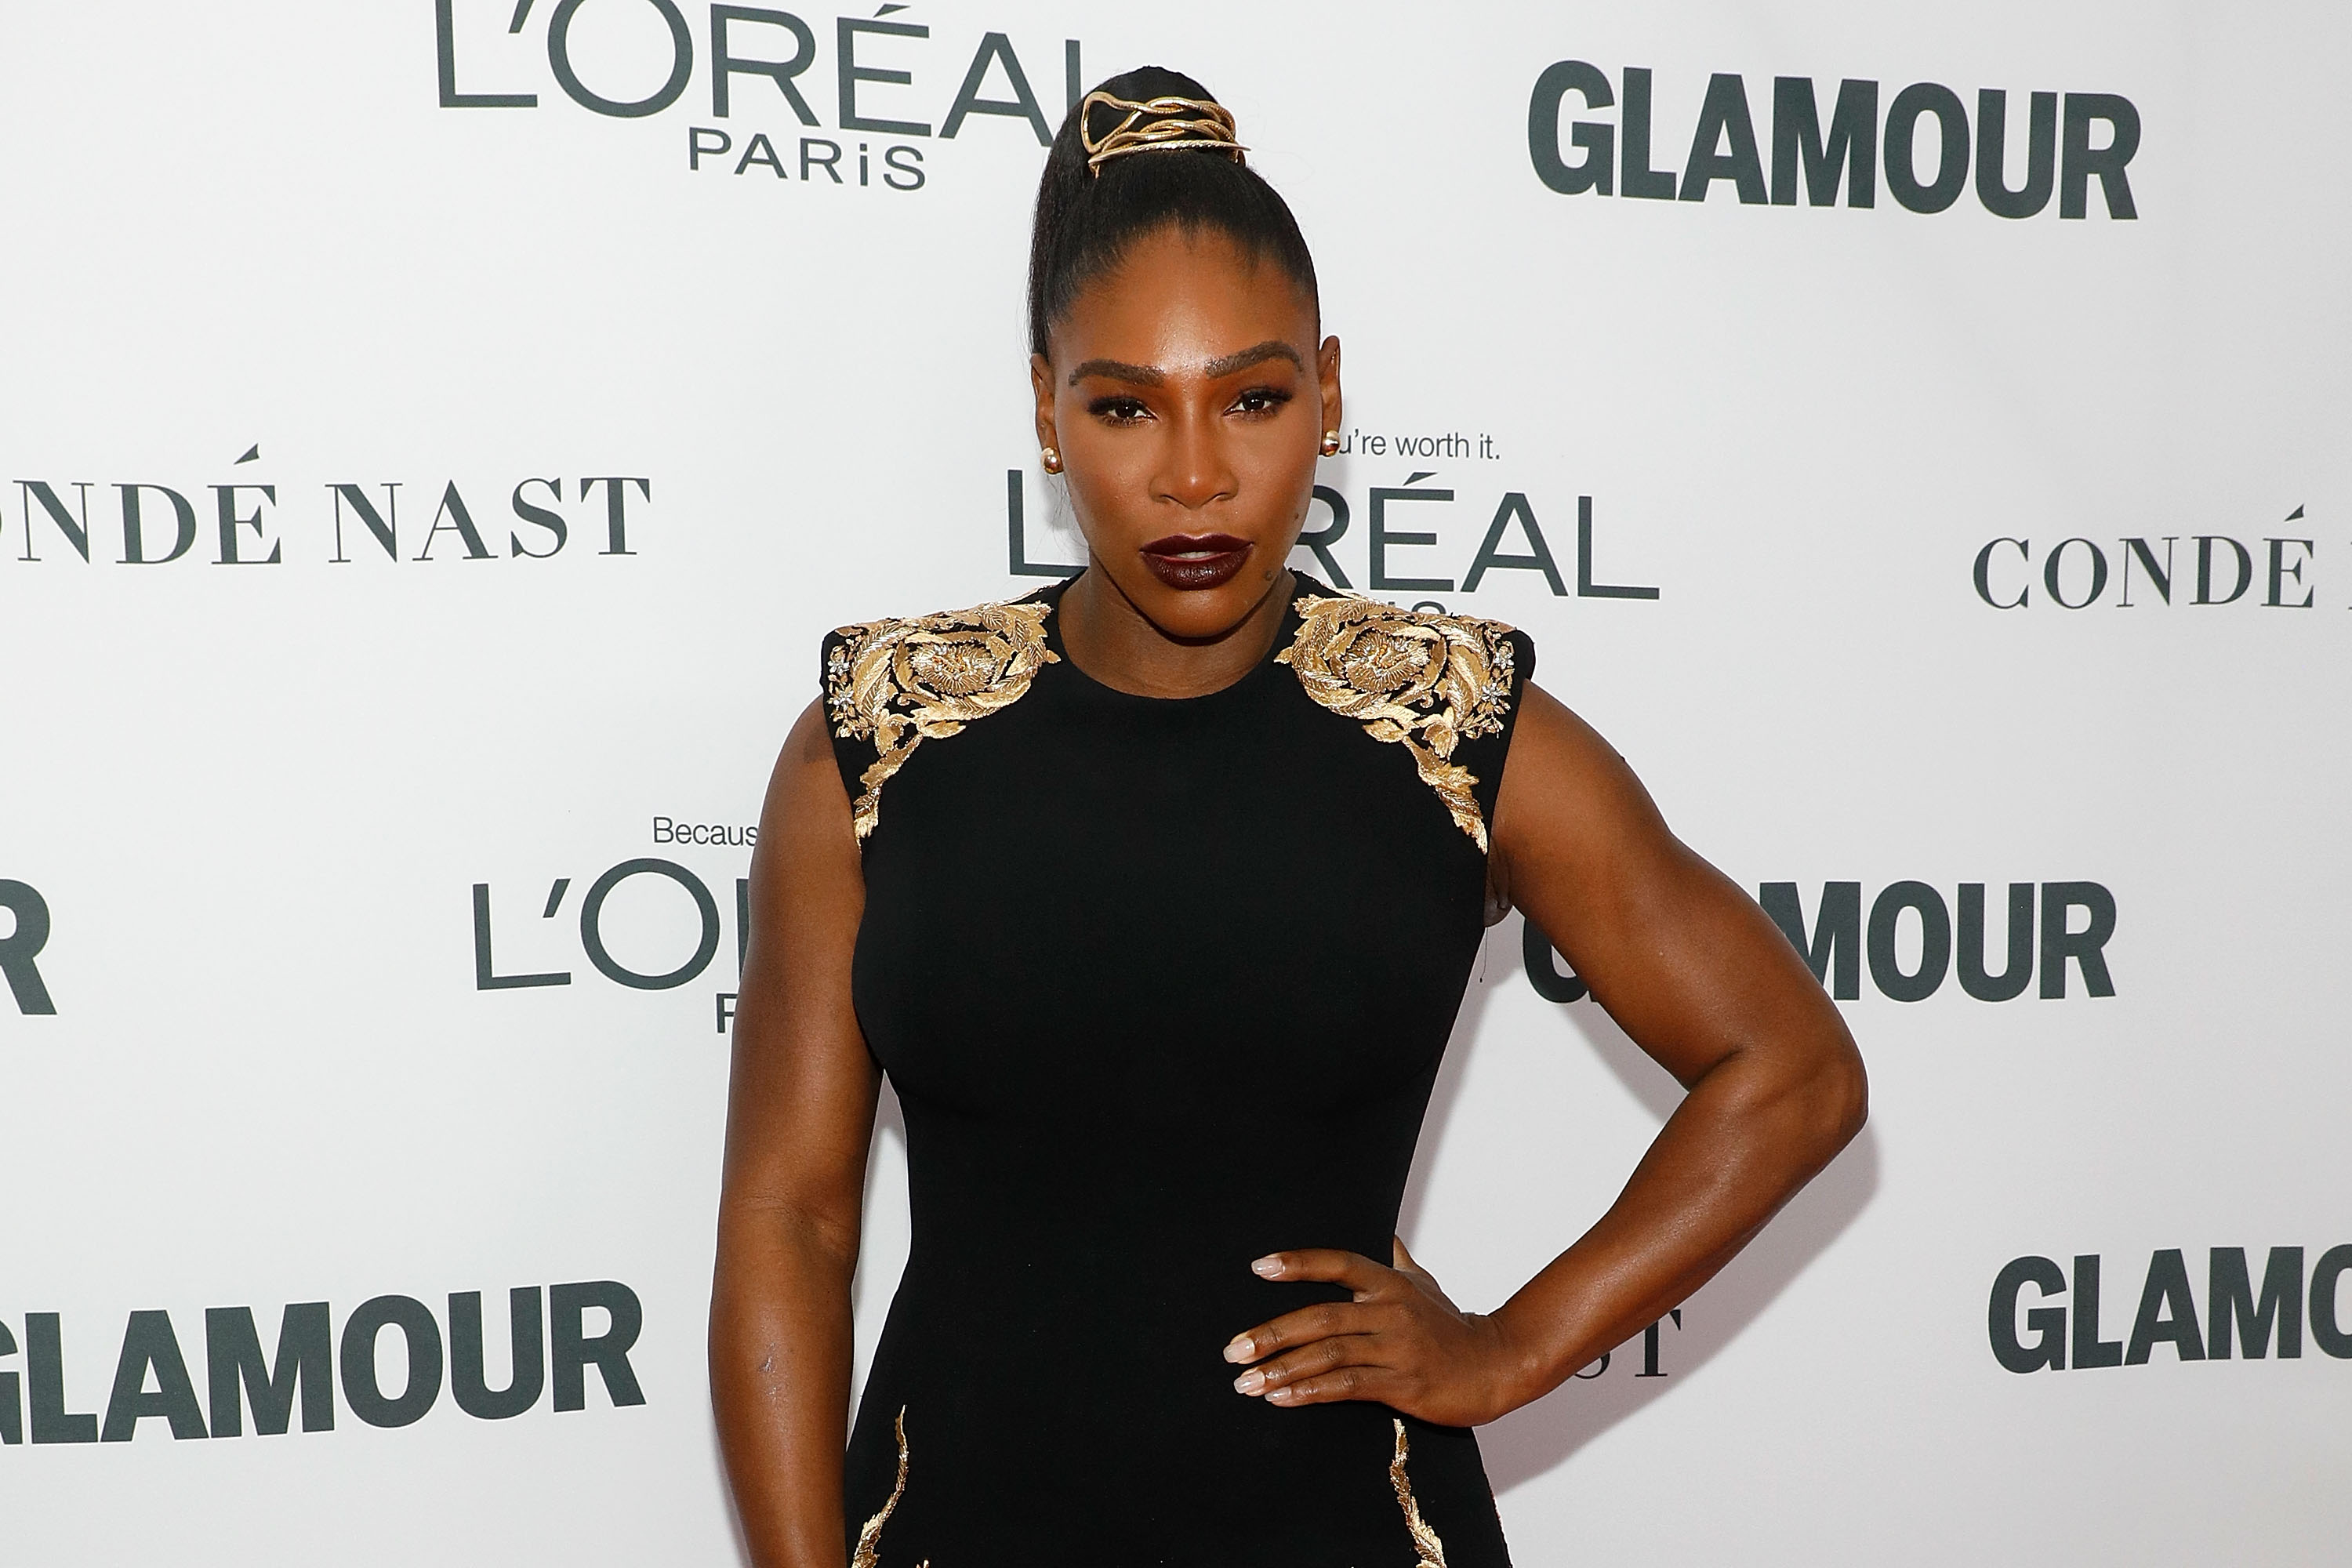 Serena Williams attends the 2017 Glamour Women of the Year Awards in New York City.